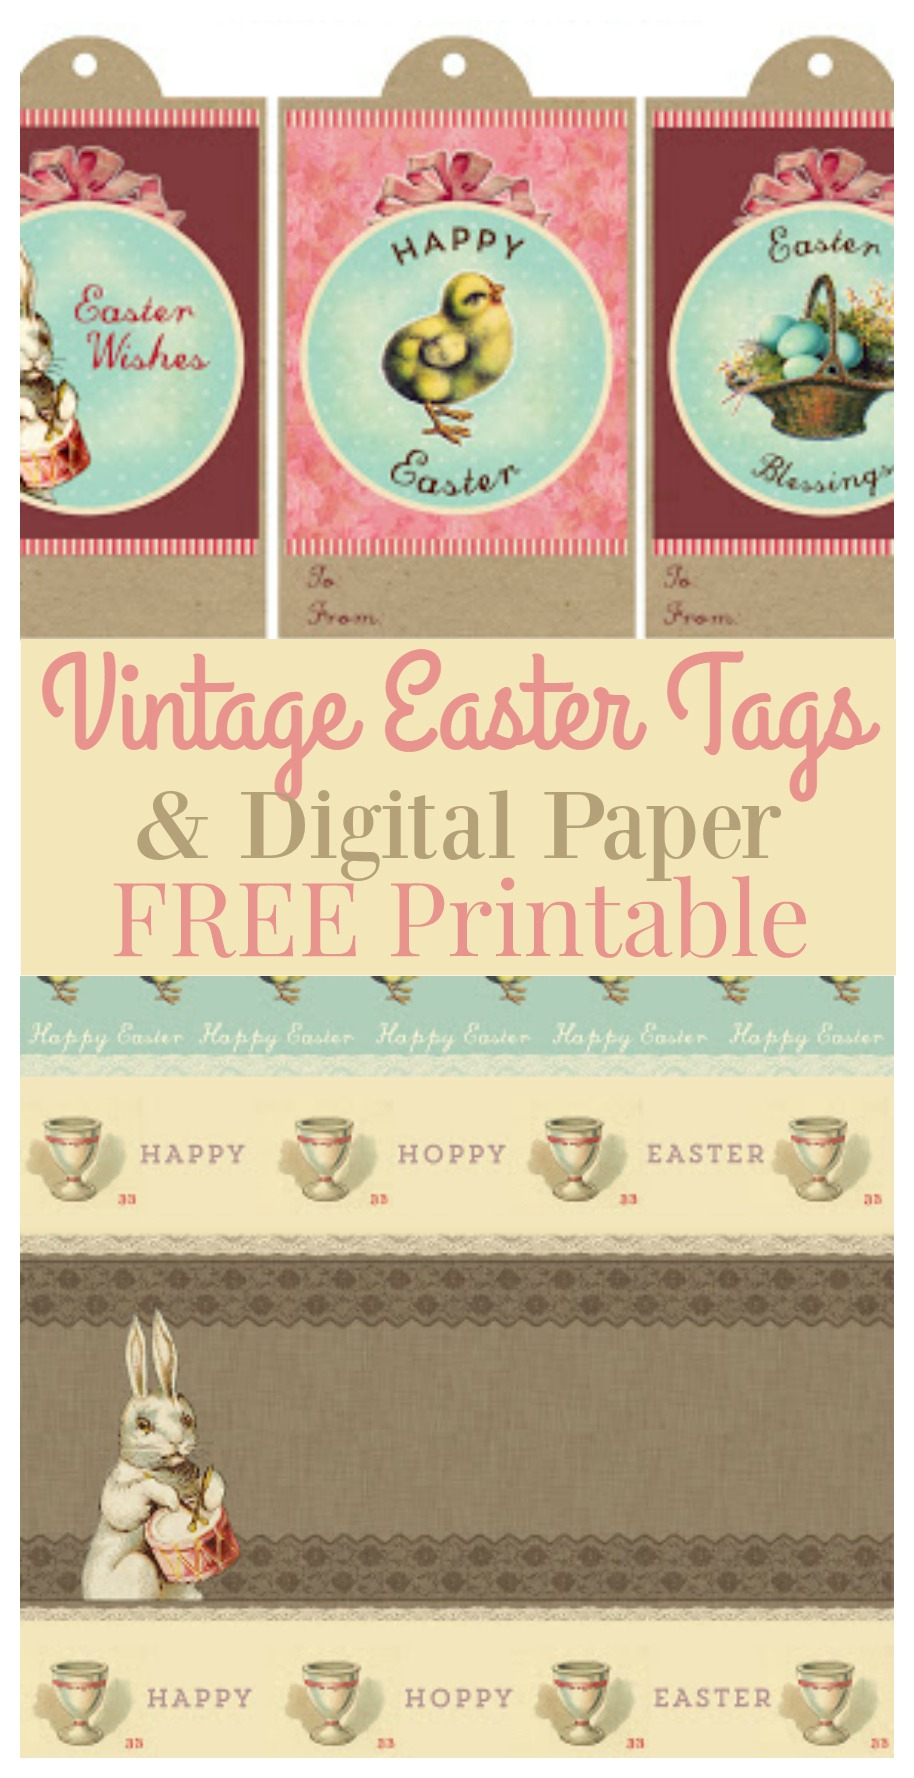 Printable Vintage Easter Gift Tags & Digital Paper - The Graphics Fairy - Free Printable Vintage Pictures